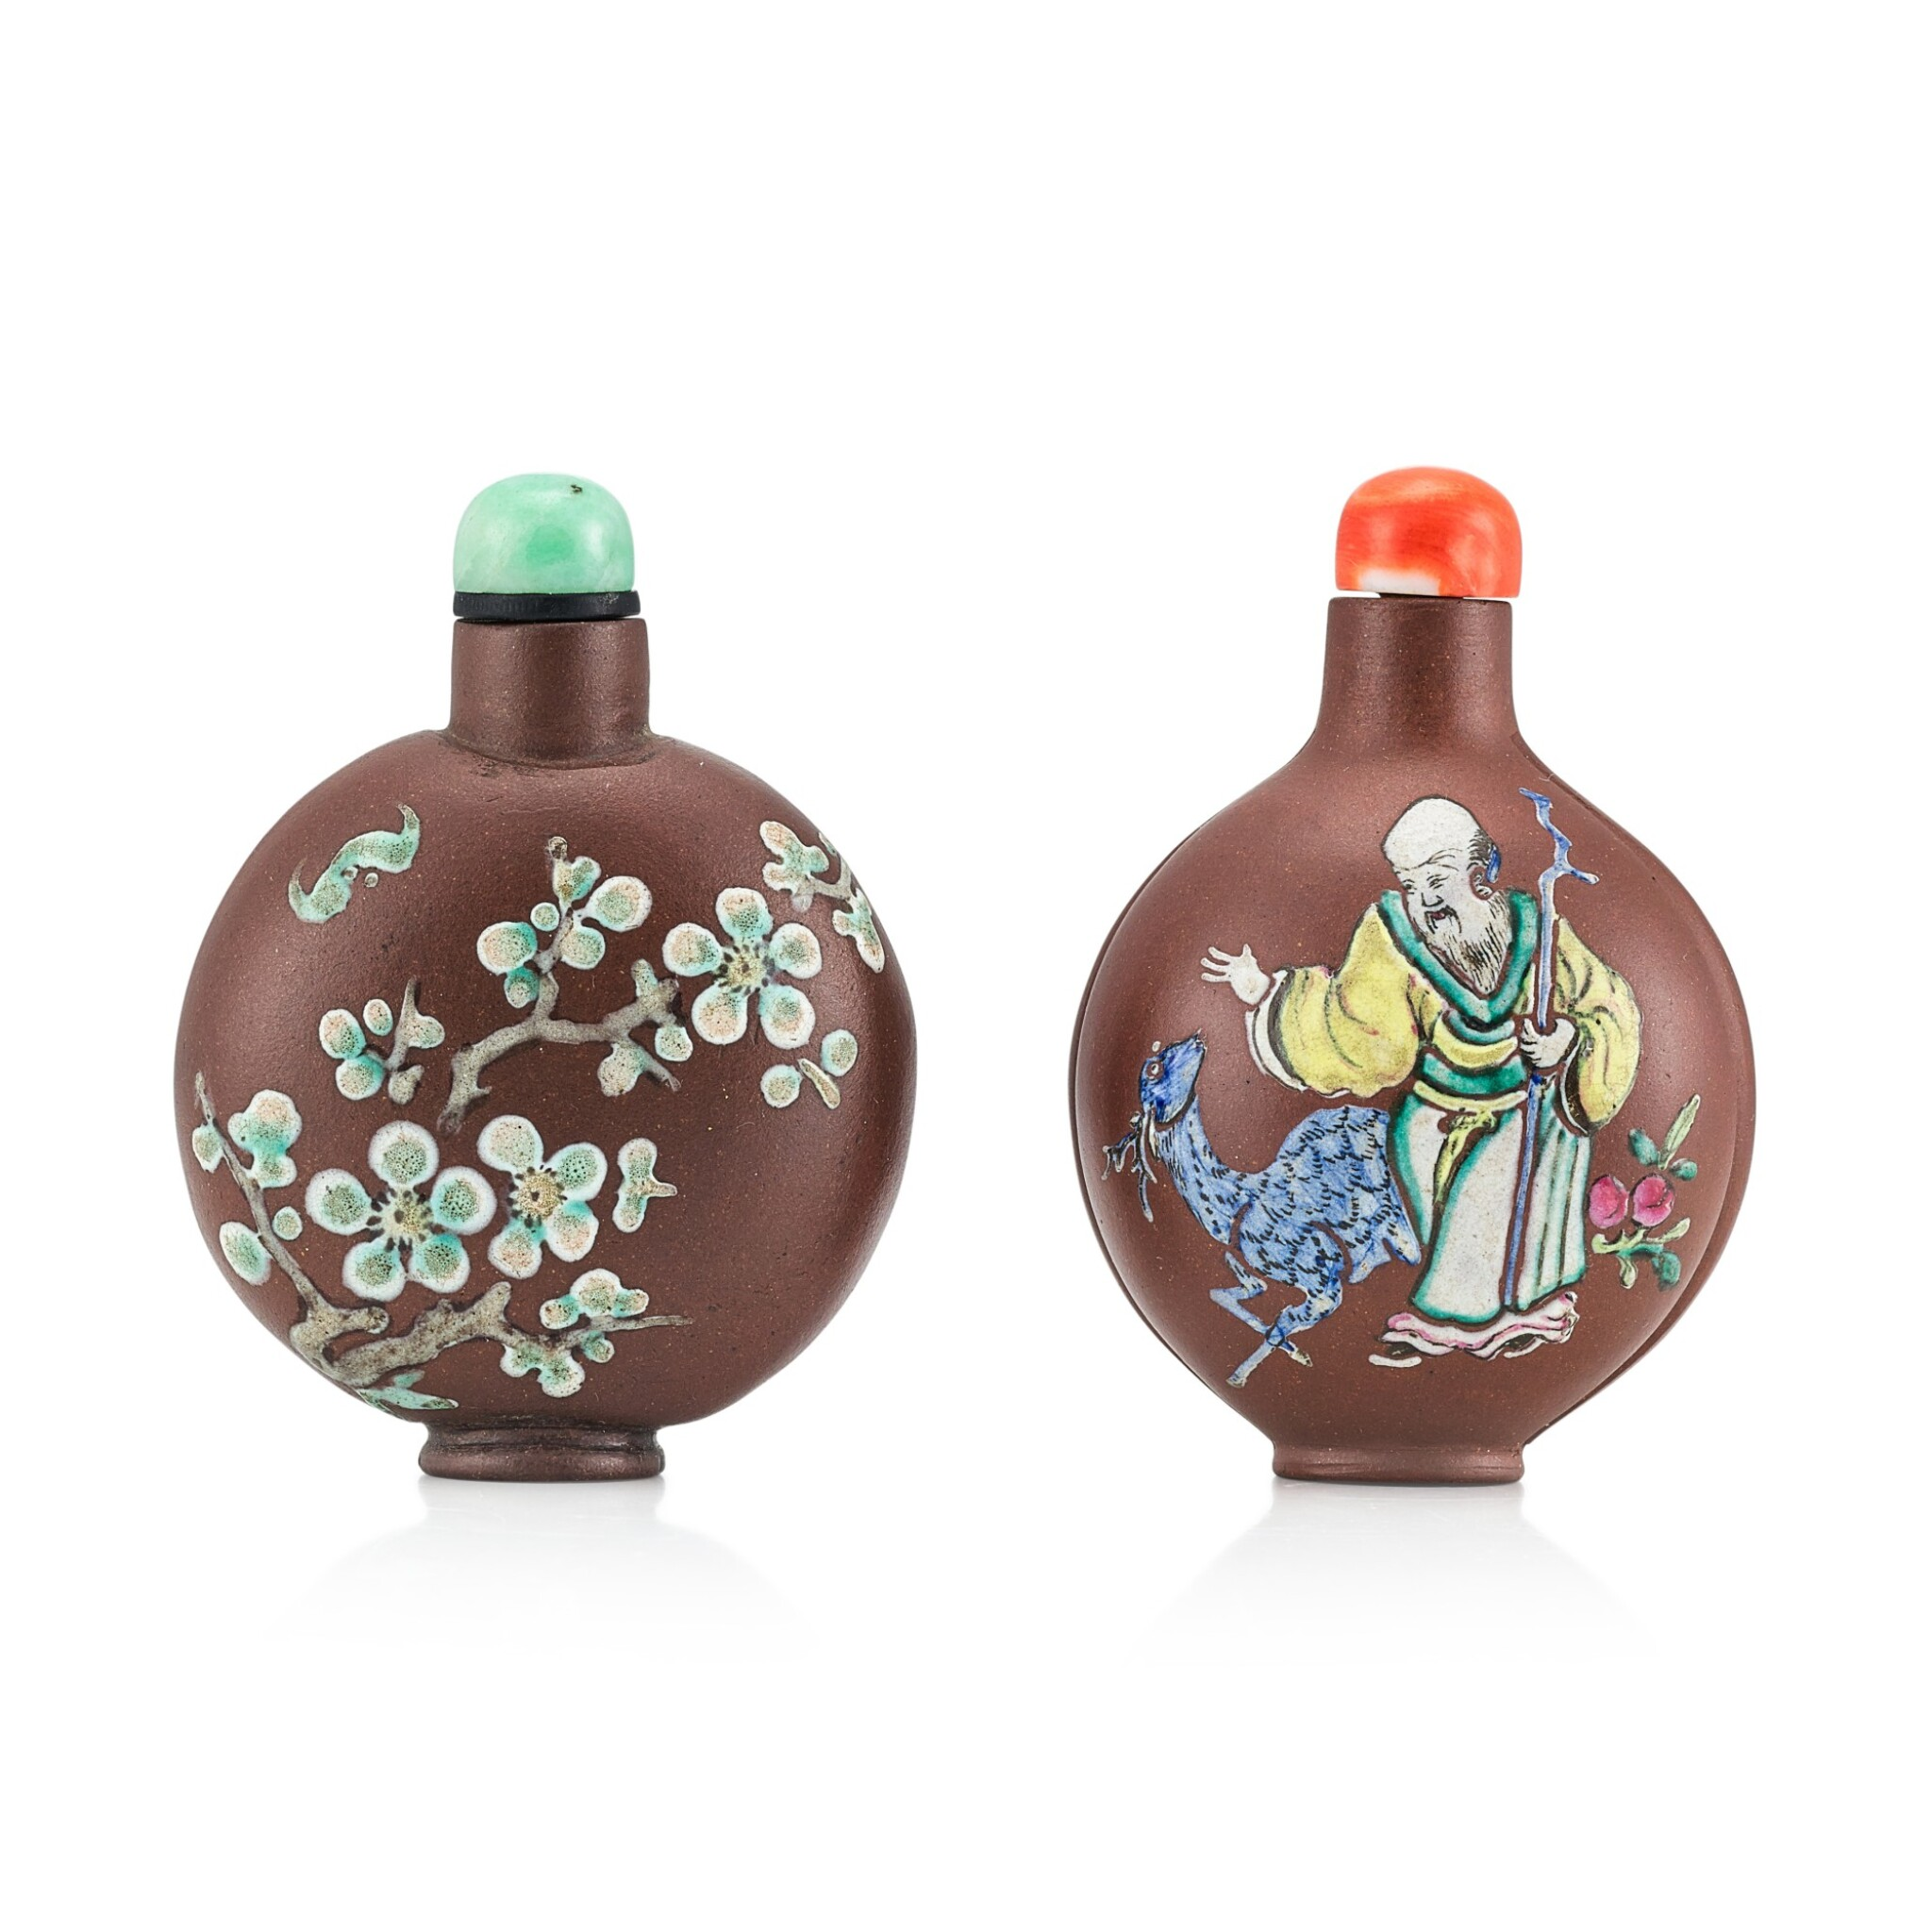 View 1 of Lot 3077. Two Yixing Slip-Decorated Snuff Bottles Qing Dynasty, 19th Century | 清十九世紀 宜興紫砂堆料加彩鼻煙壺兩件.